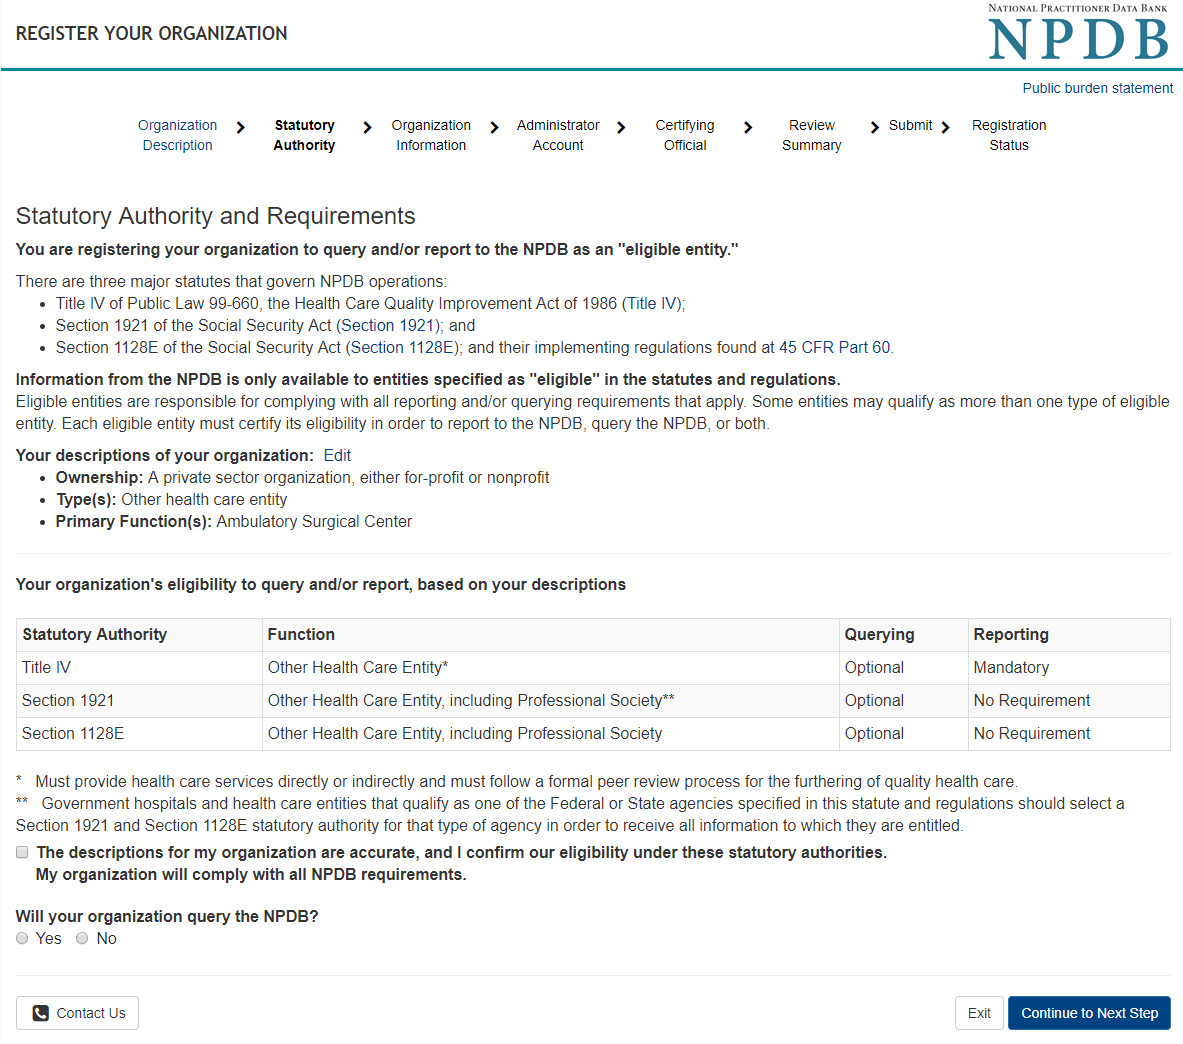 Screenshot of statutory authorities for your organization